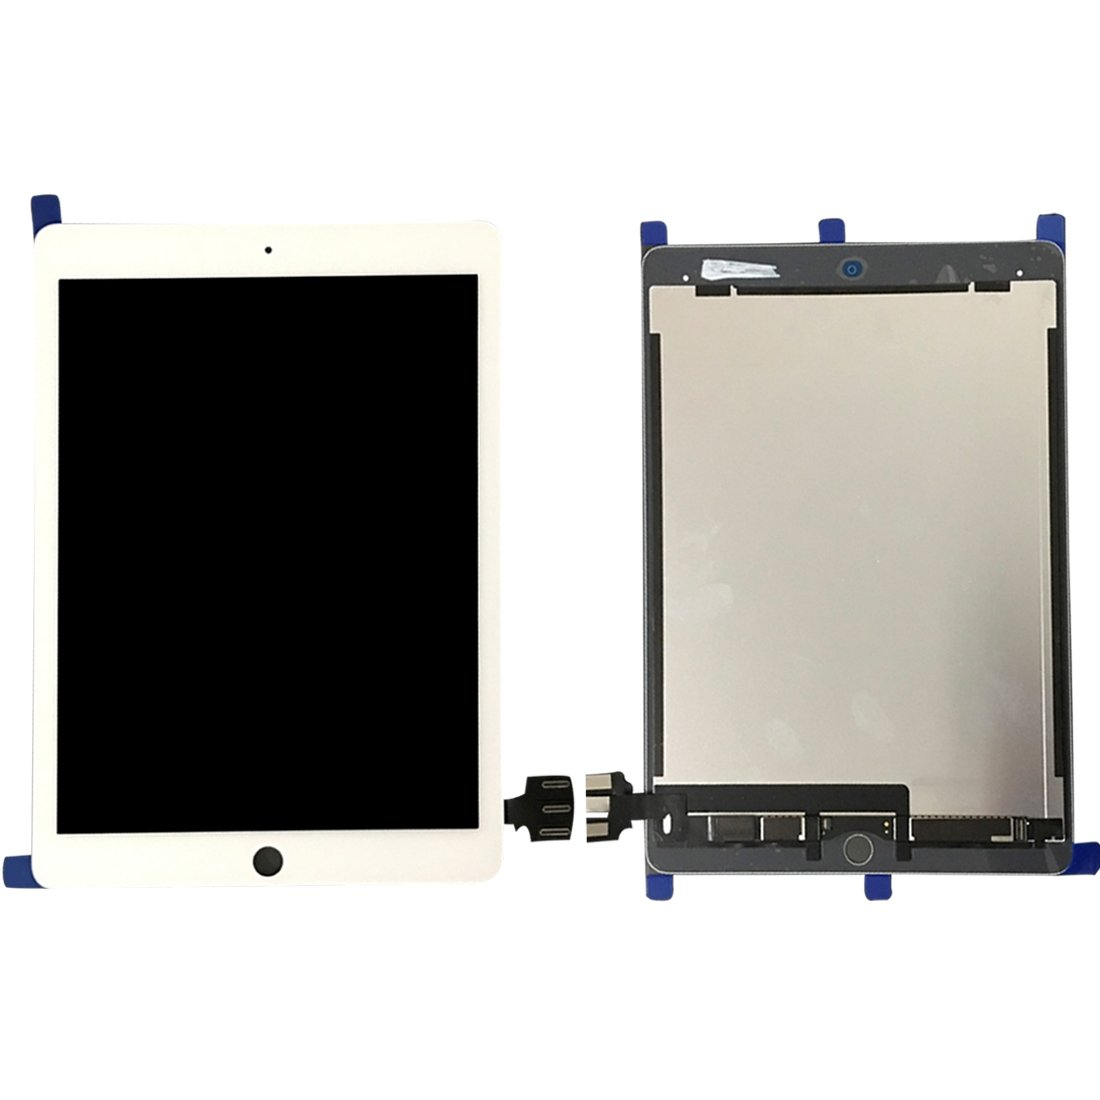 iPartsBuy for iPad Pro 9.7 inch / A1673 / A1674 / A1675 LCD Screen + Touch Screen Digitizer Assembly (White)